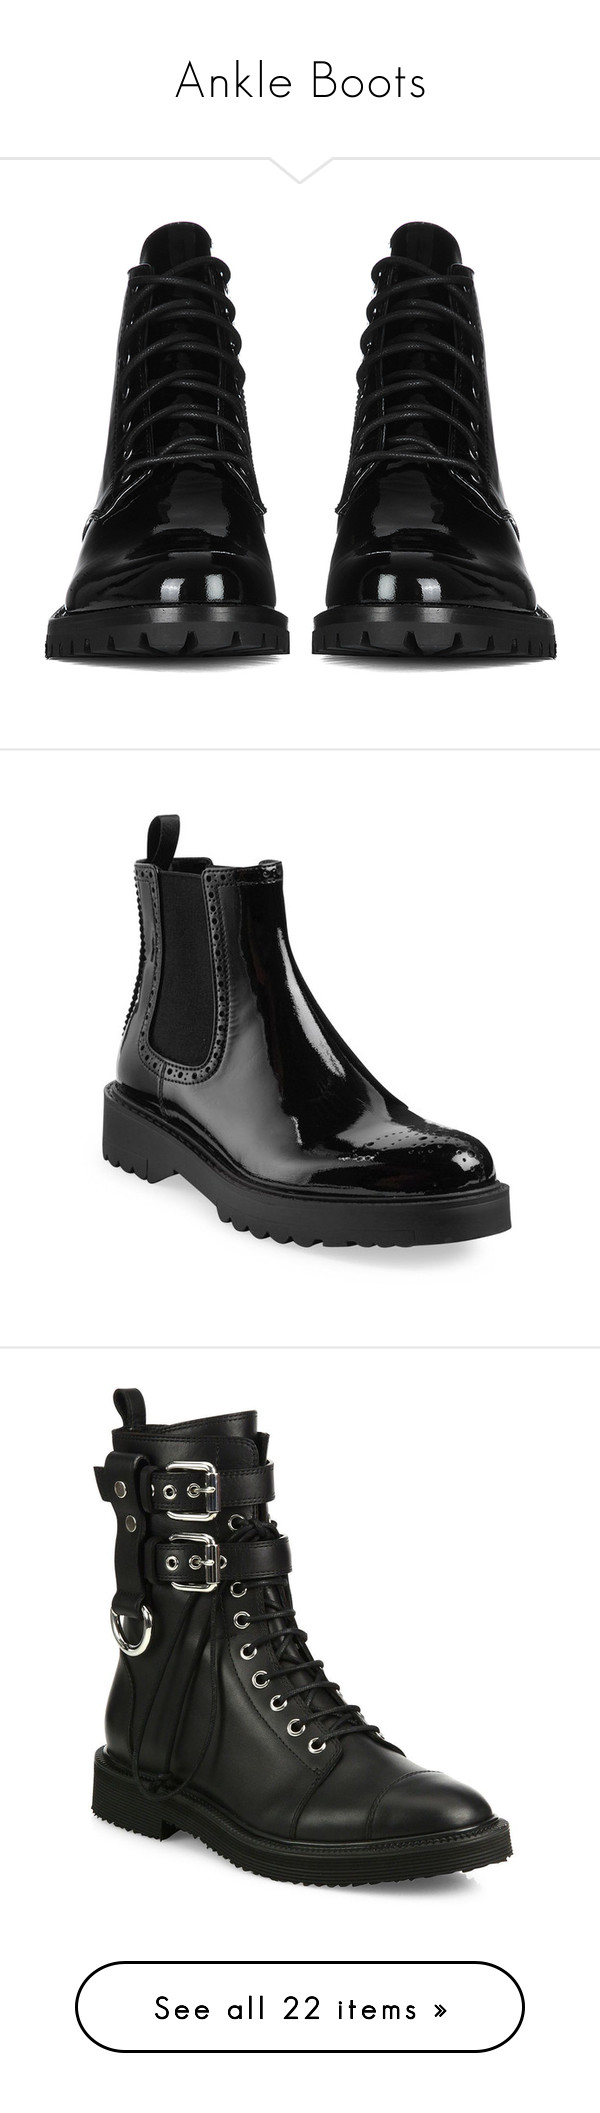 """""""Ankle Boots"""" by yourstylemood ❤ liked on Polyvore featuring shoes, boots, ankle booties, ankle-boots, black, black ankle boots, chelsea boots, black ankle booties, black patent leather booties and ankle boots"""